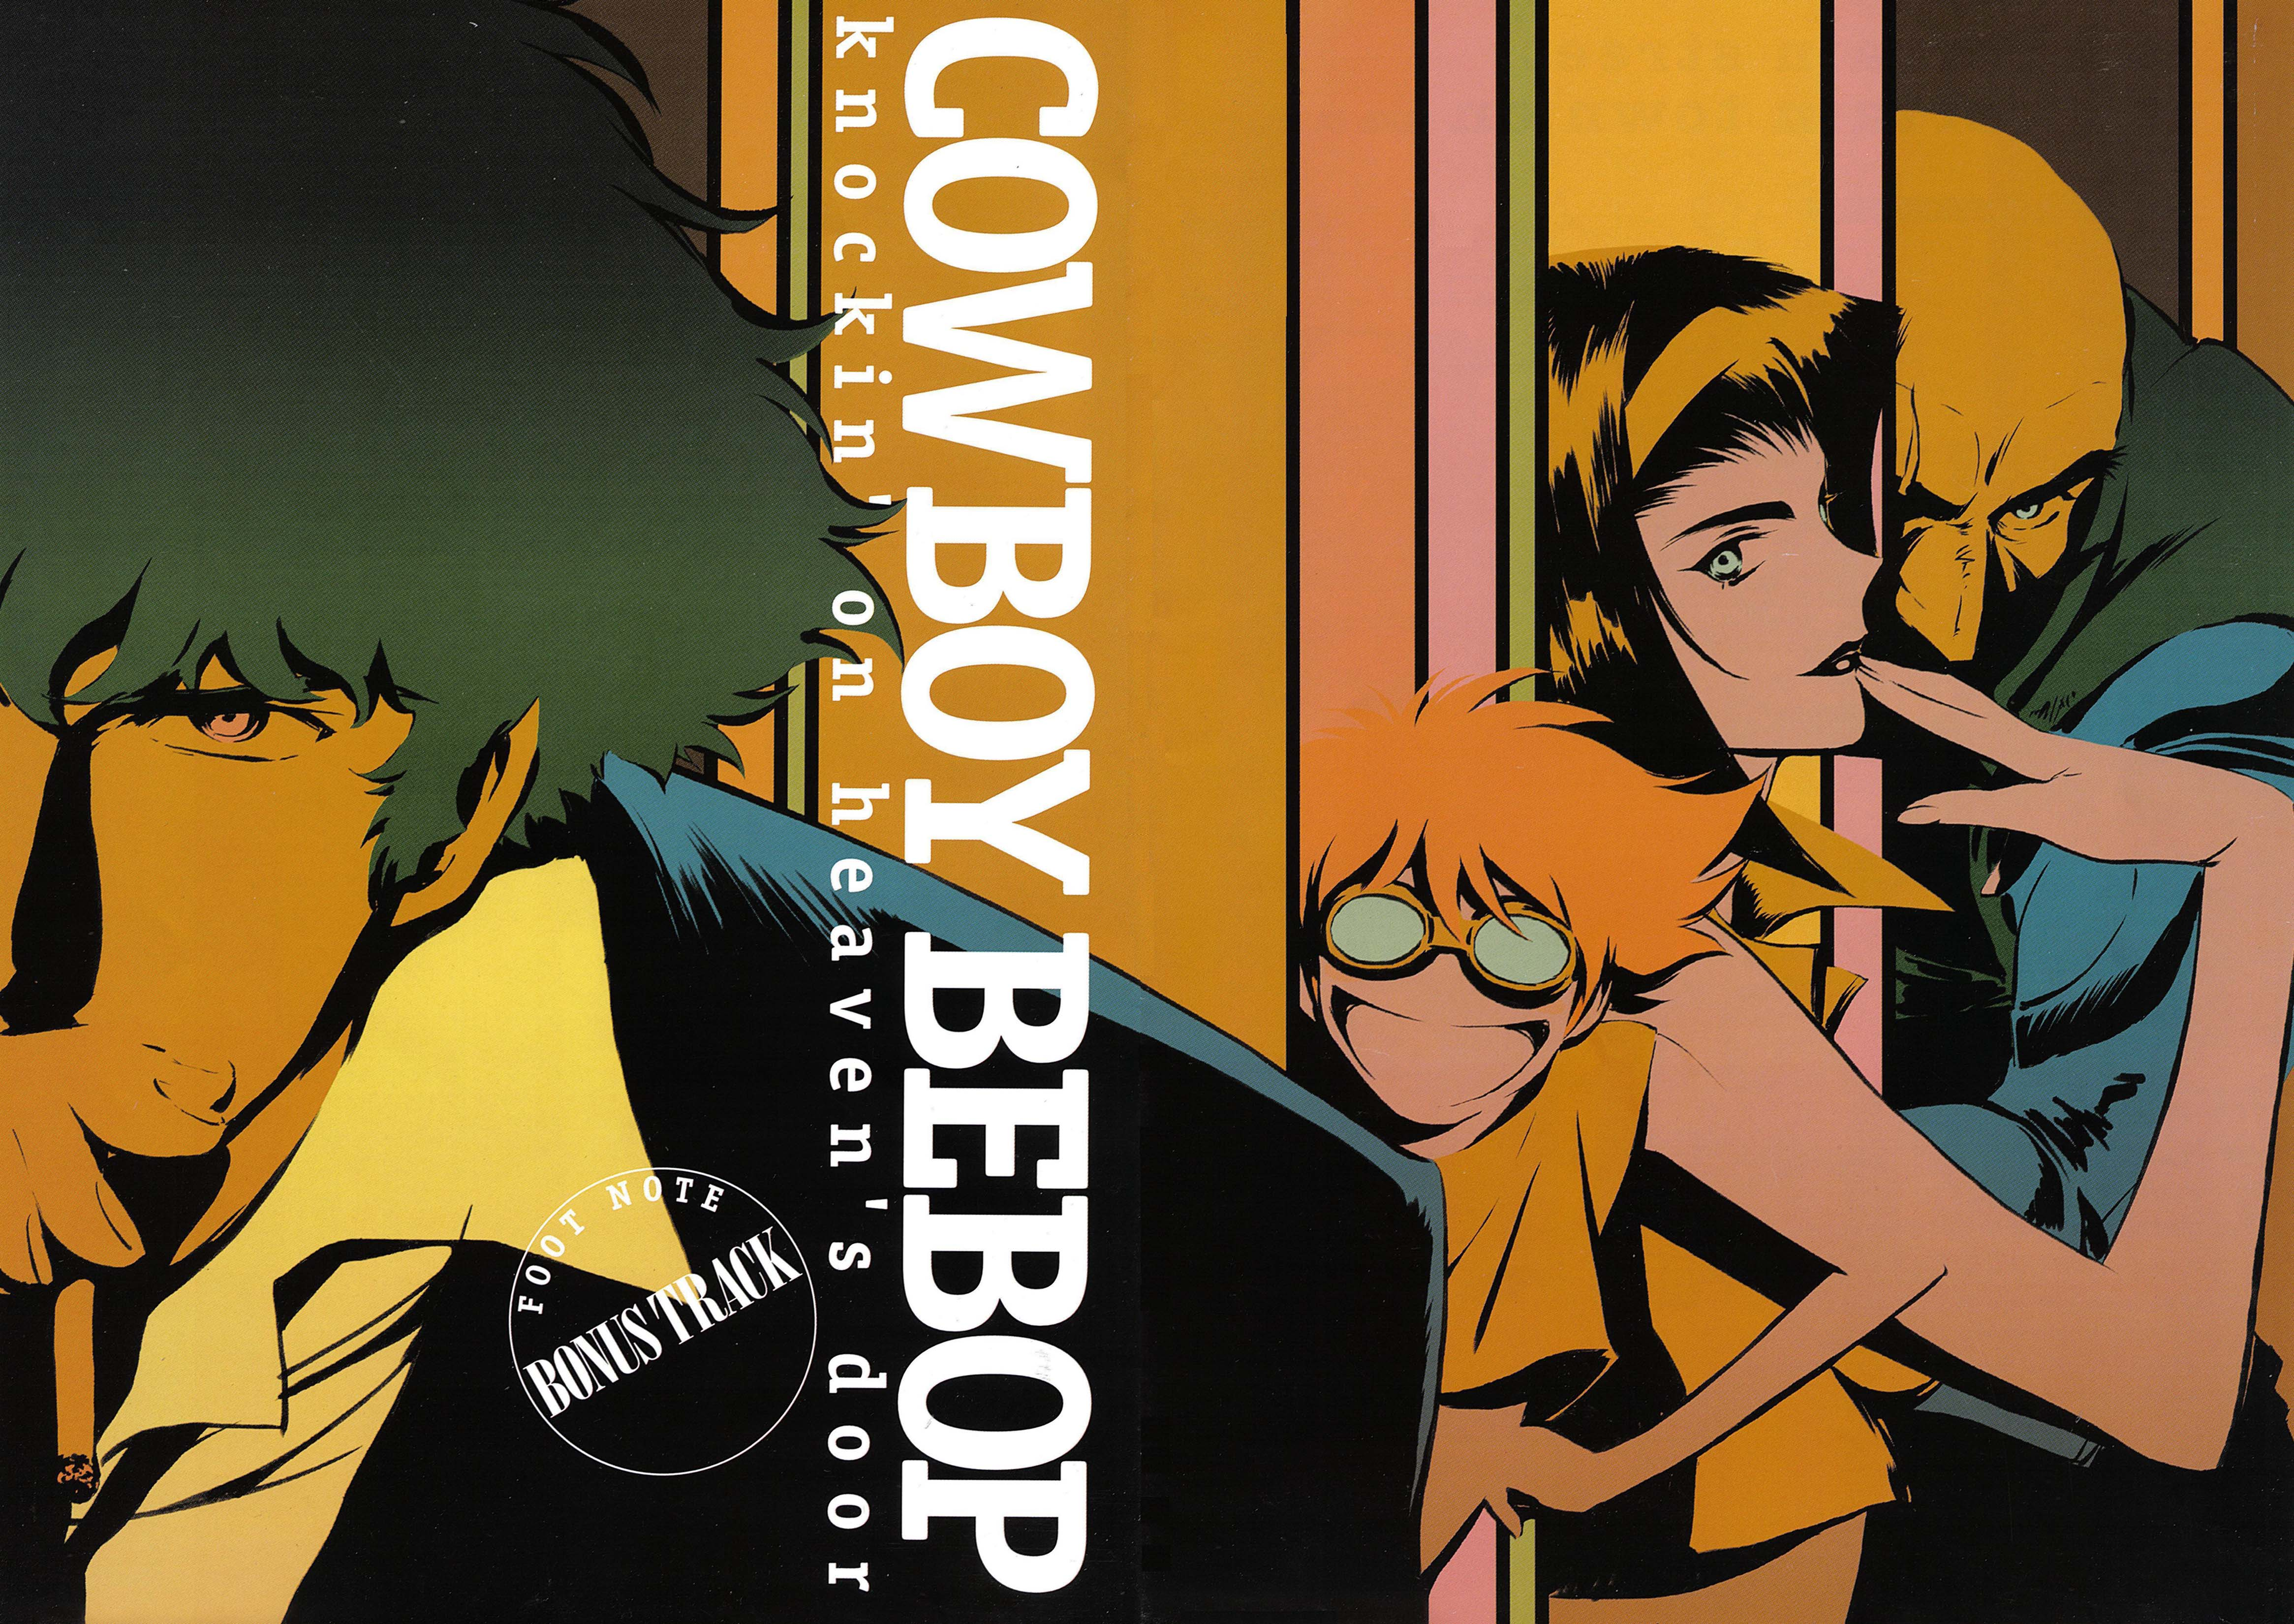 cowboy bebop living in the dream essay The first time i finished cowboy bebop was on thanksgiving i cried at the end of 'cowboy bebop' all i could think about was my life is just a dream.